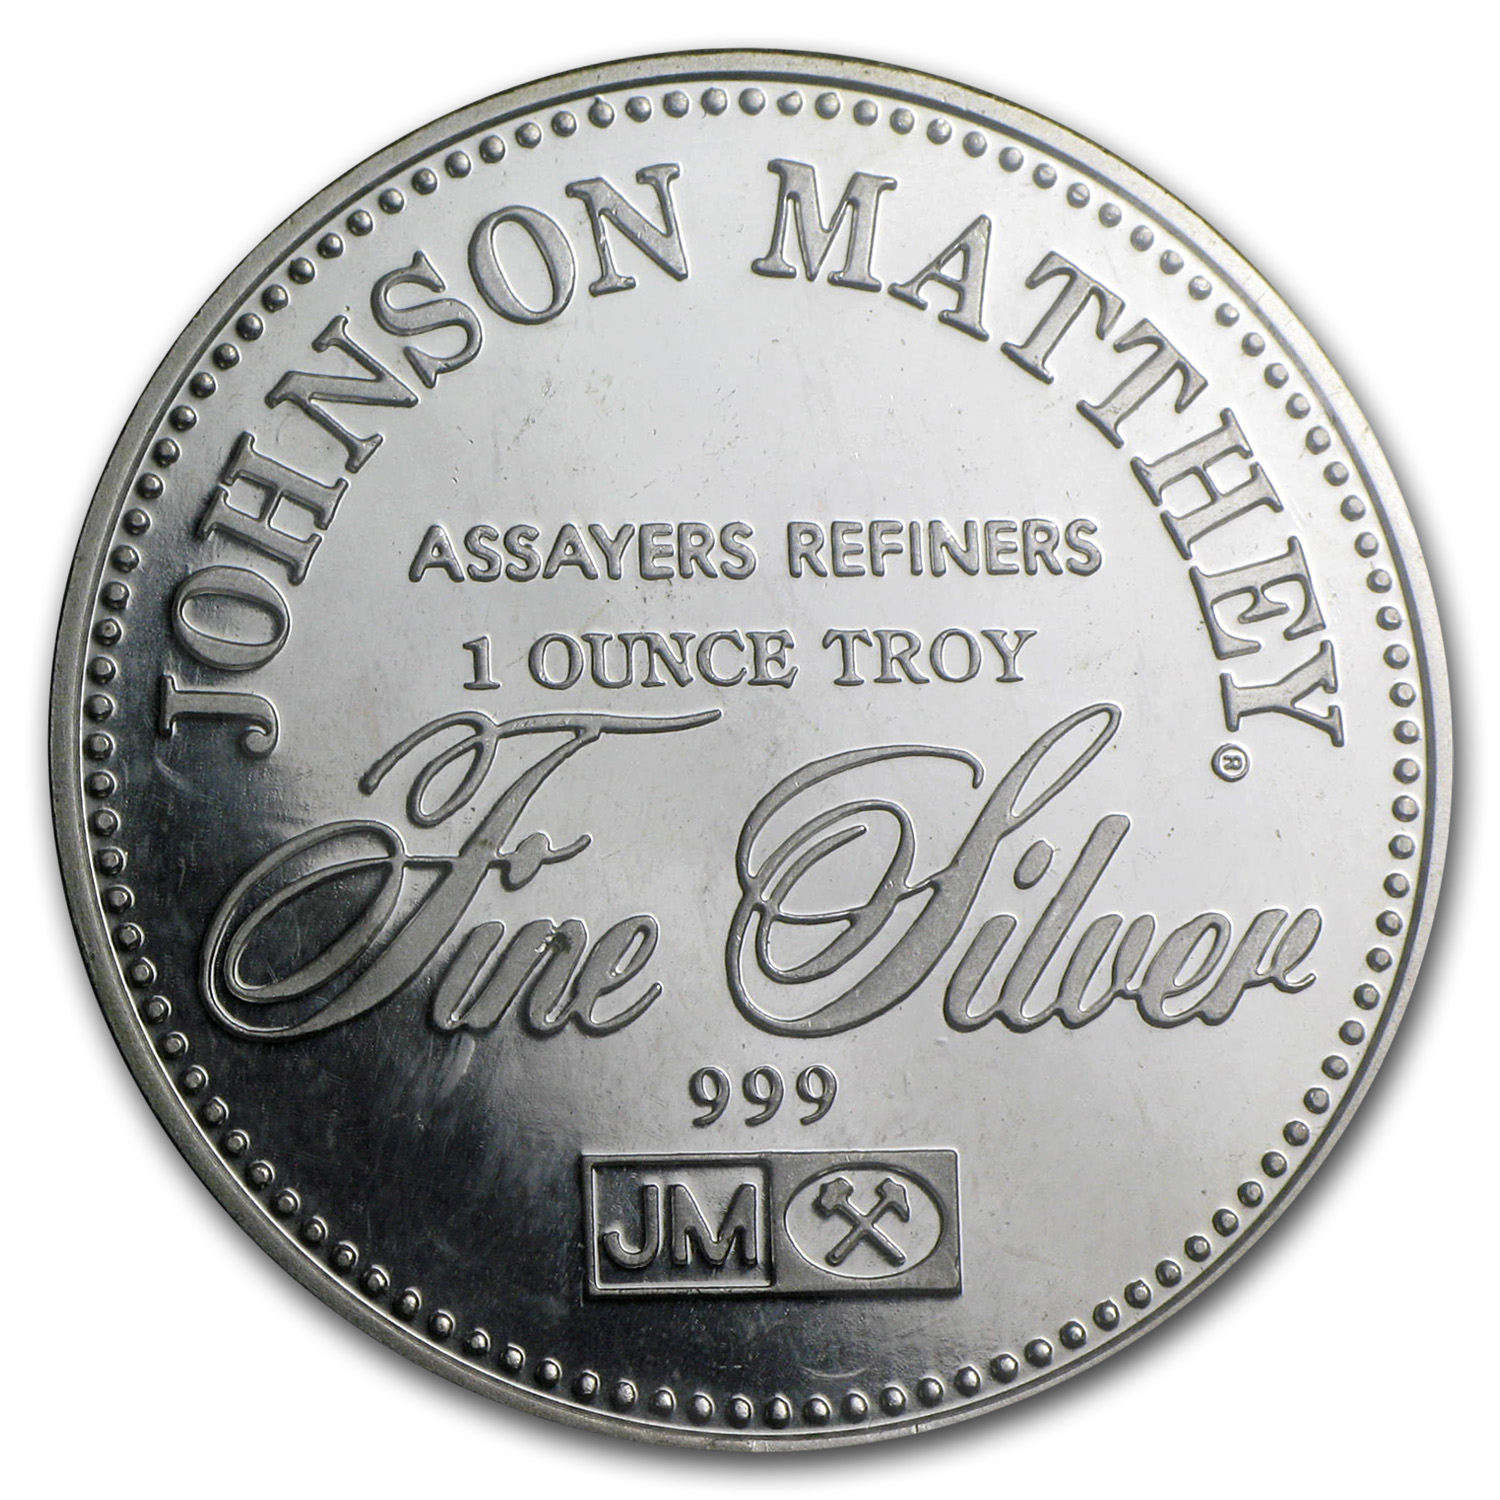 1 oz Silver Rounds - Johnson Matthey (Sealed/Right to Vote)